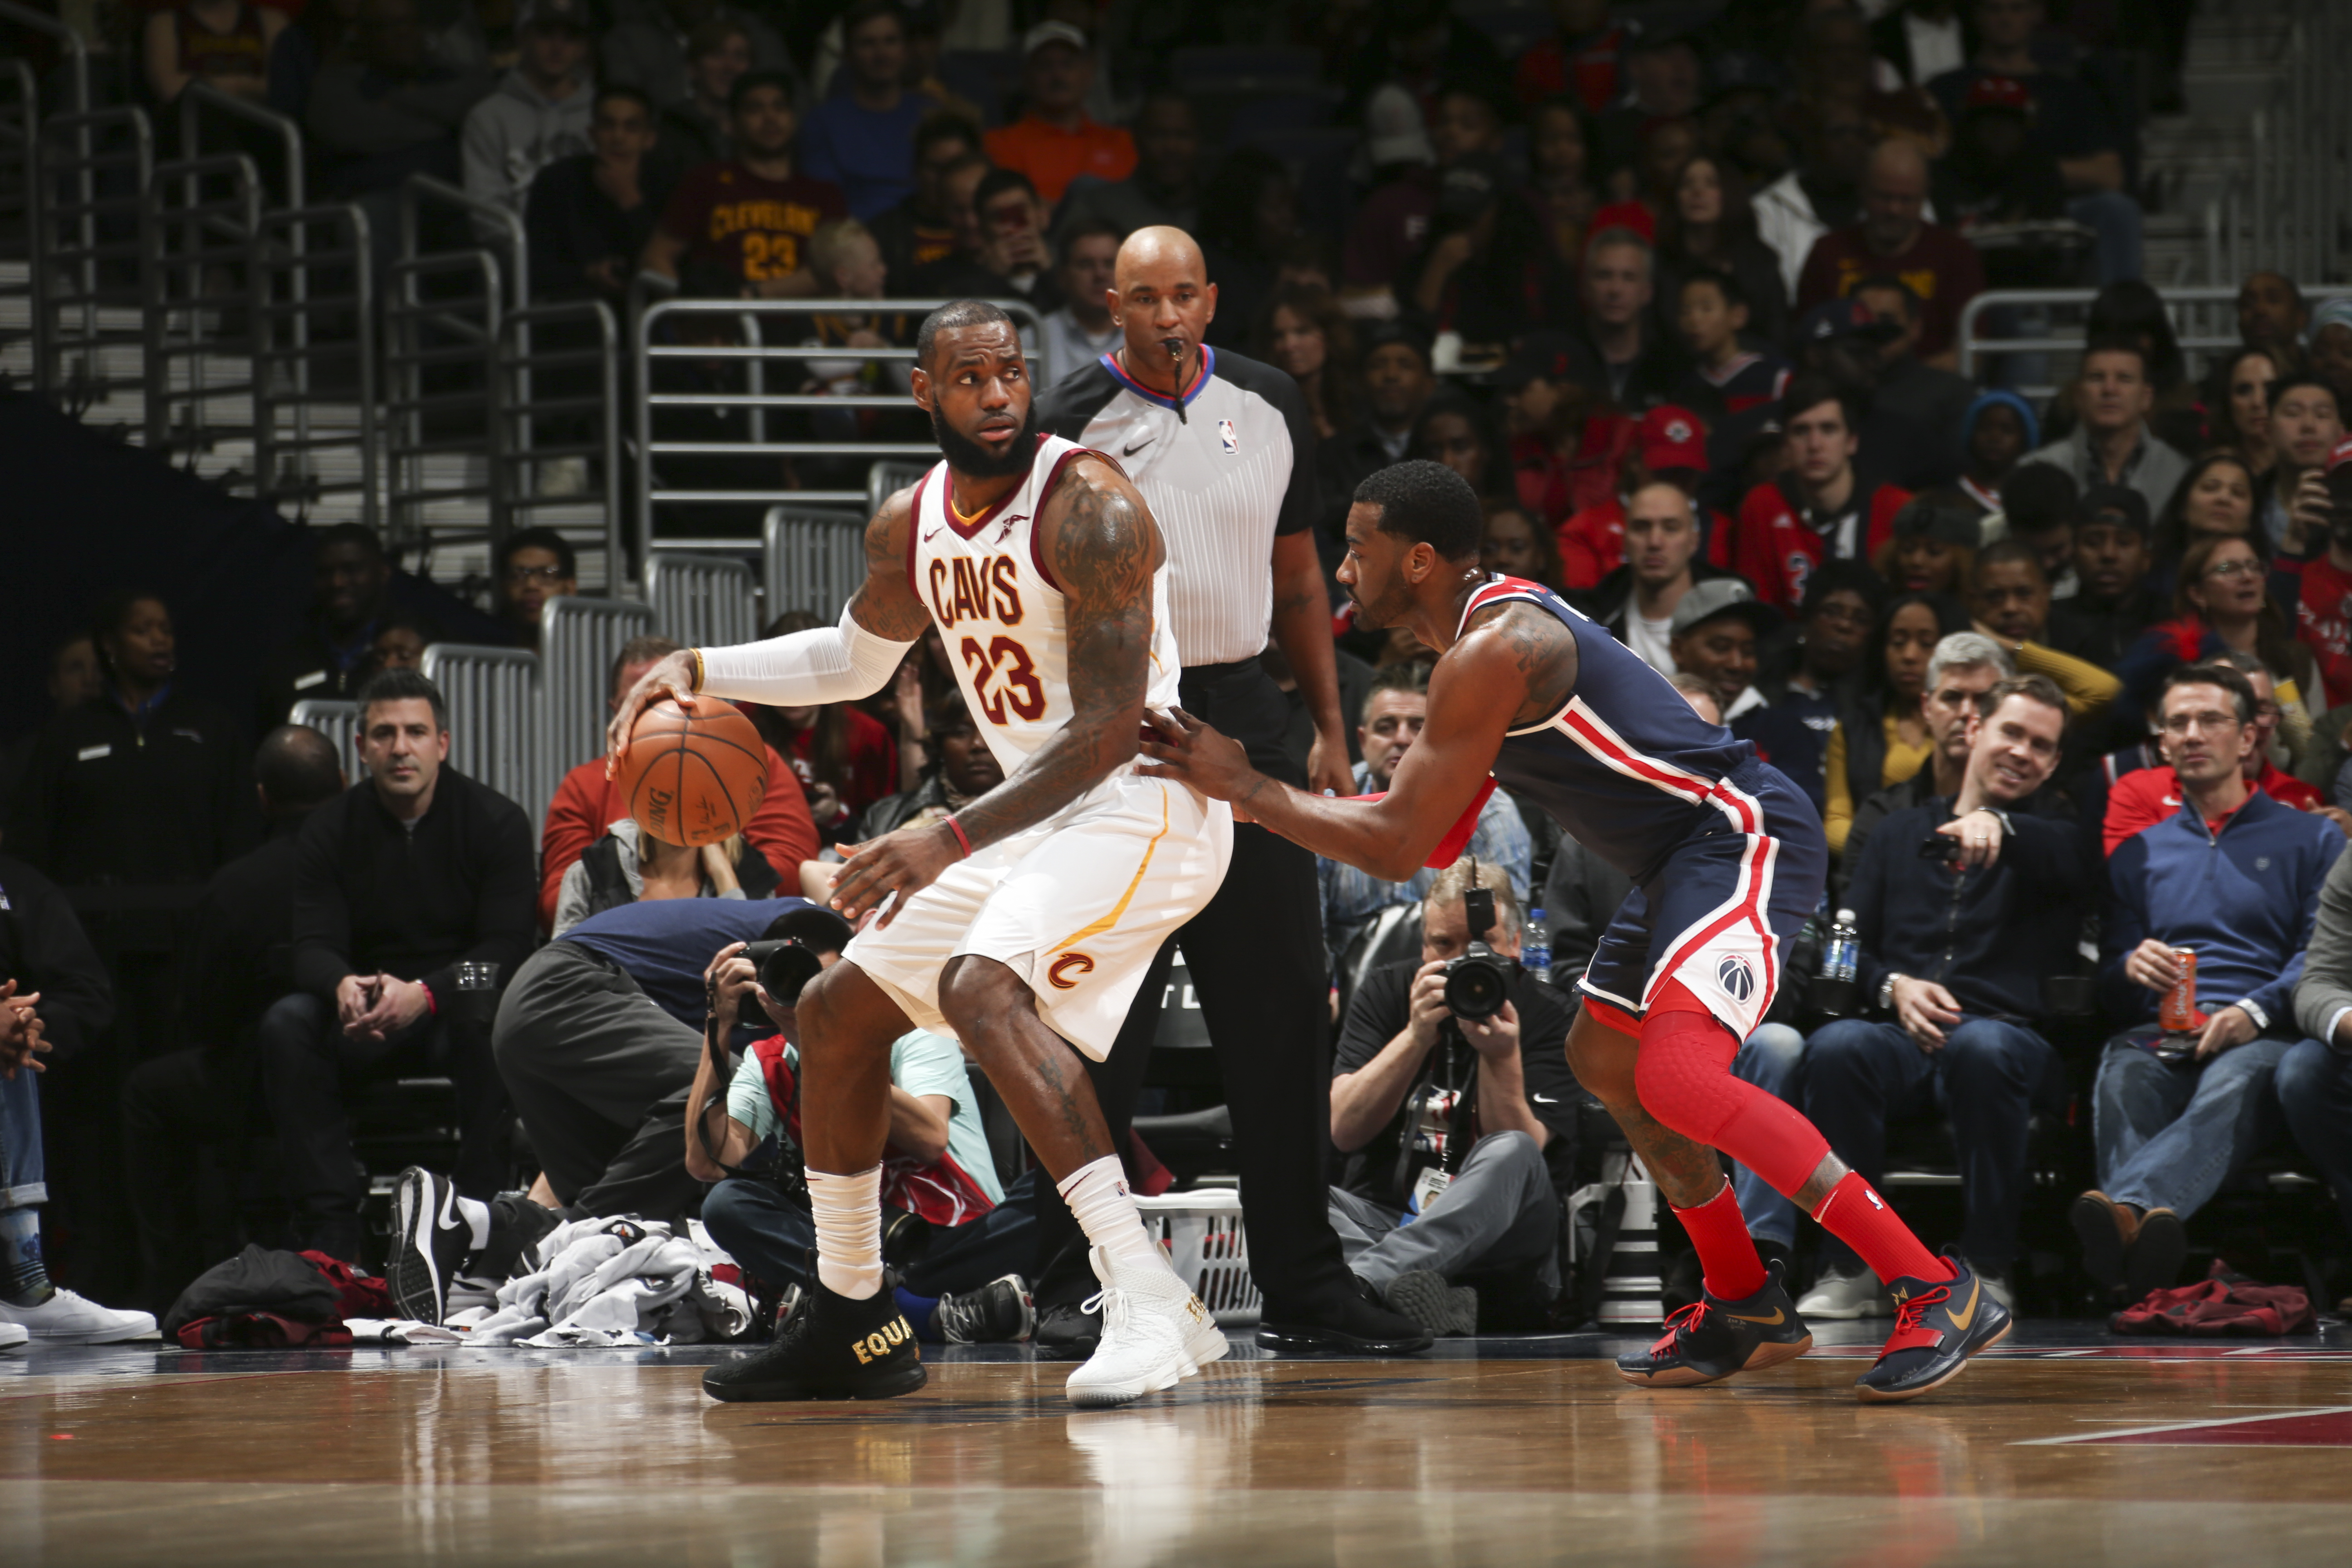 https://wizofawes.com/wp-content/uploads/getty-images/2017/12/894388868-cleveland-cavaliers-v-washington-wizards.jpg.jpg